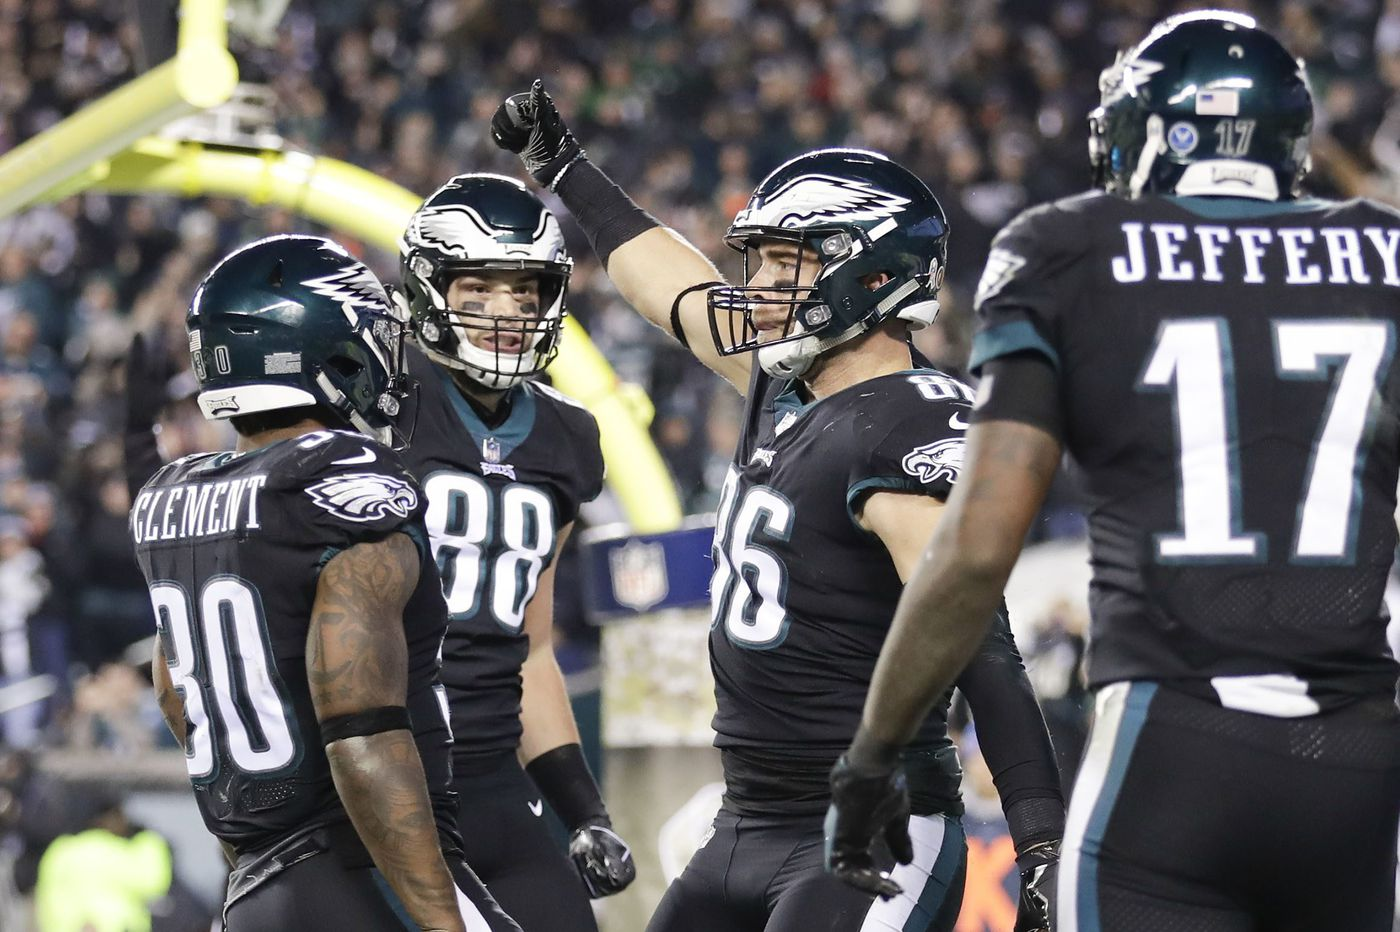 562dc4bea02 What they're saying about the Eagles loss to the Cowboys | Social media  roundup